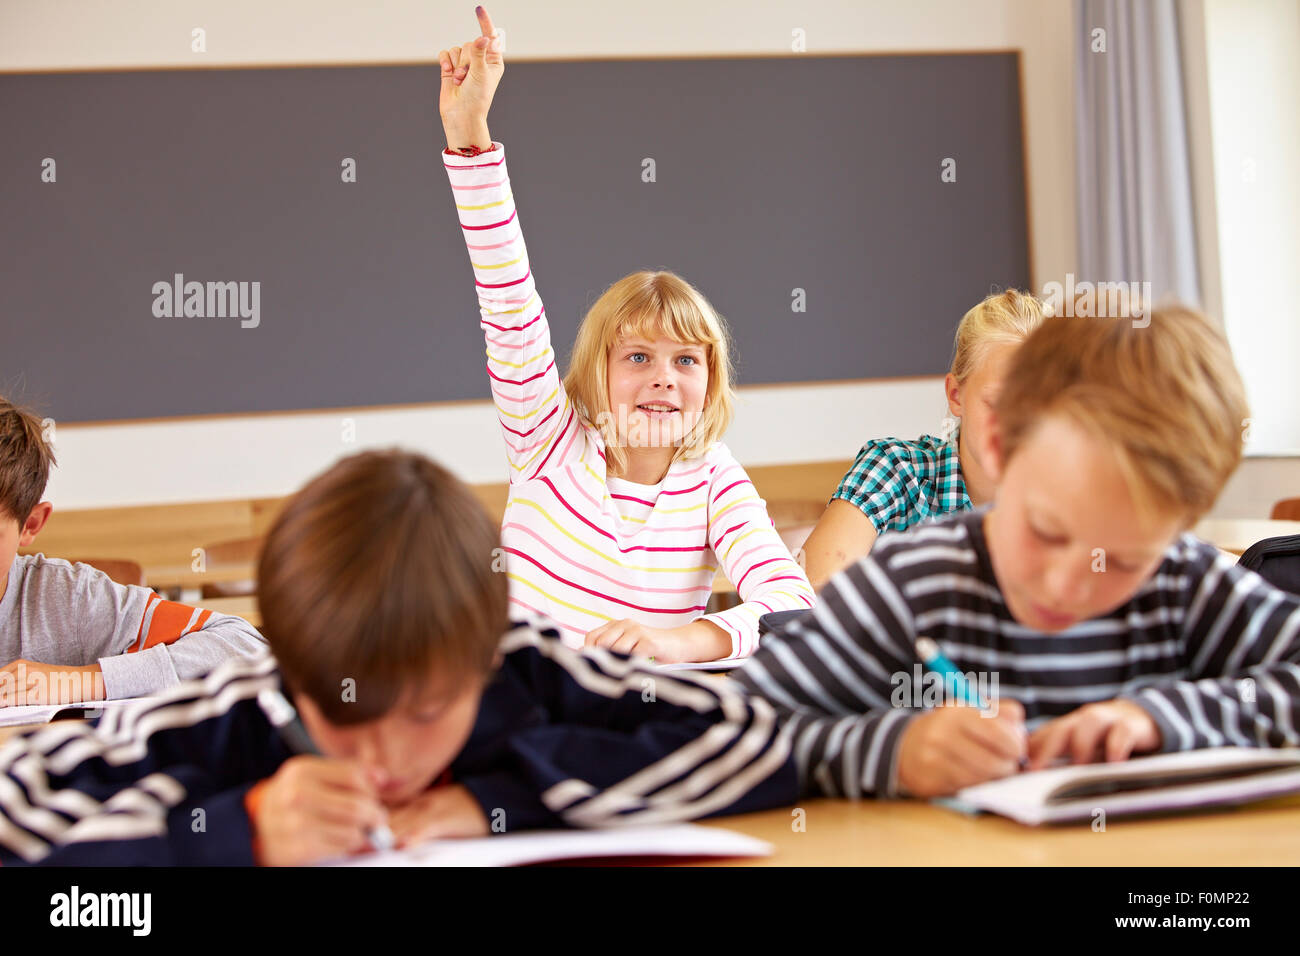 Girl logs on in the classroom - Stock Image